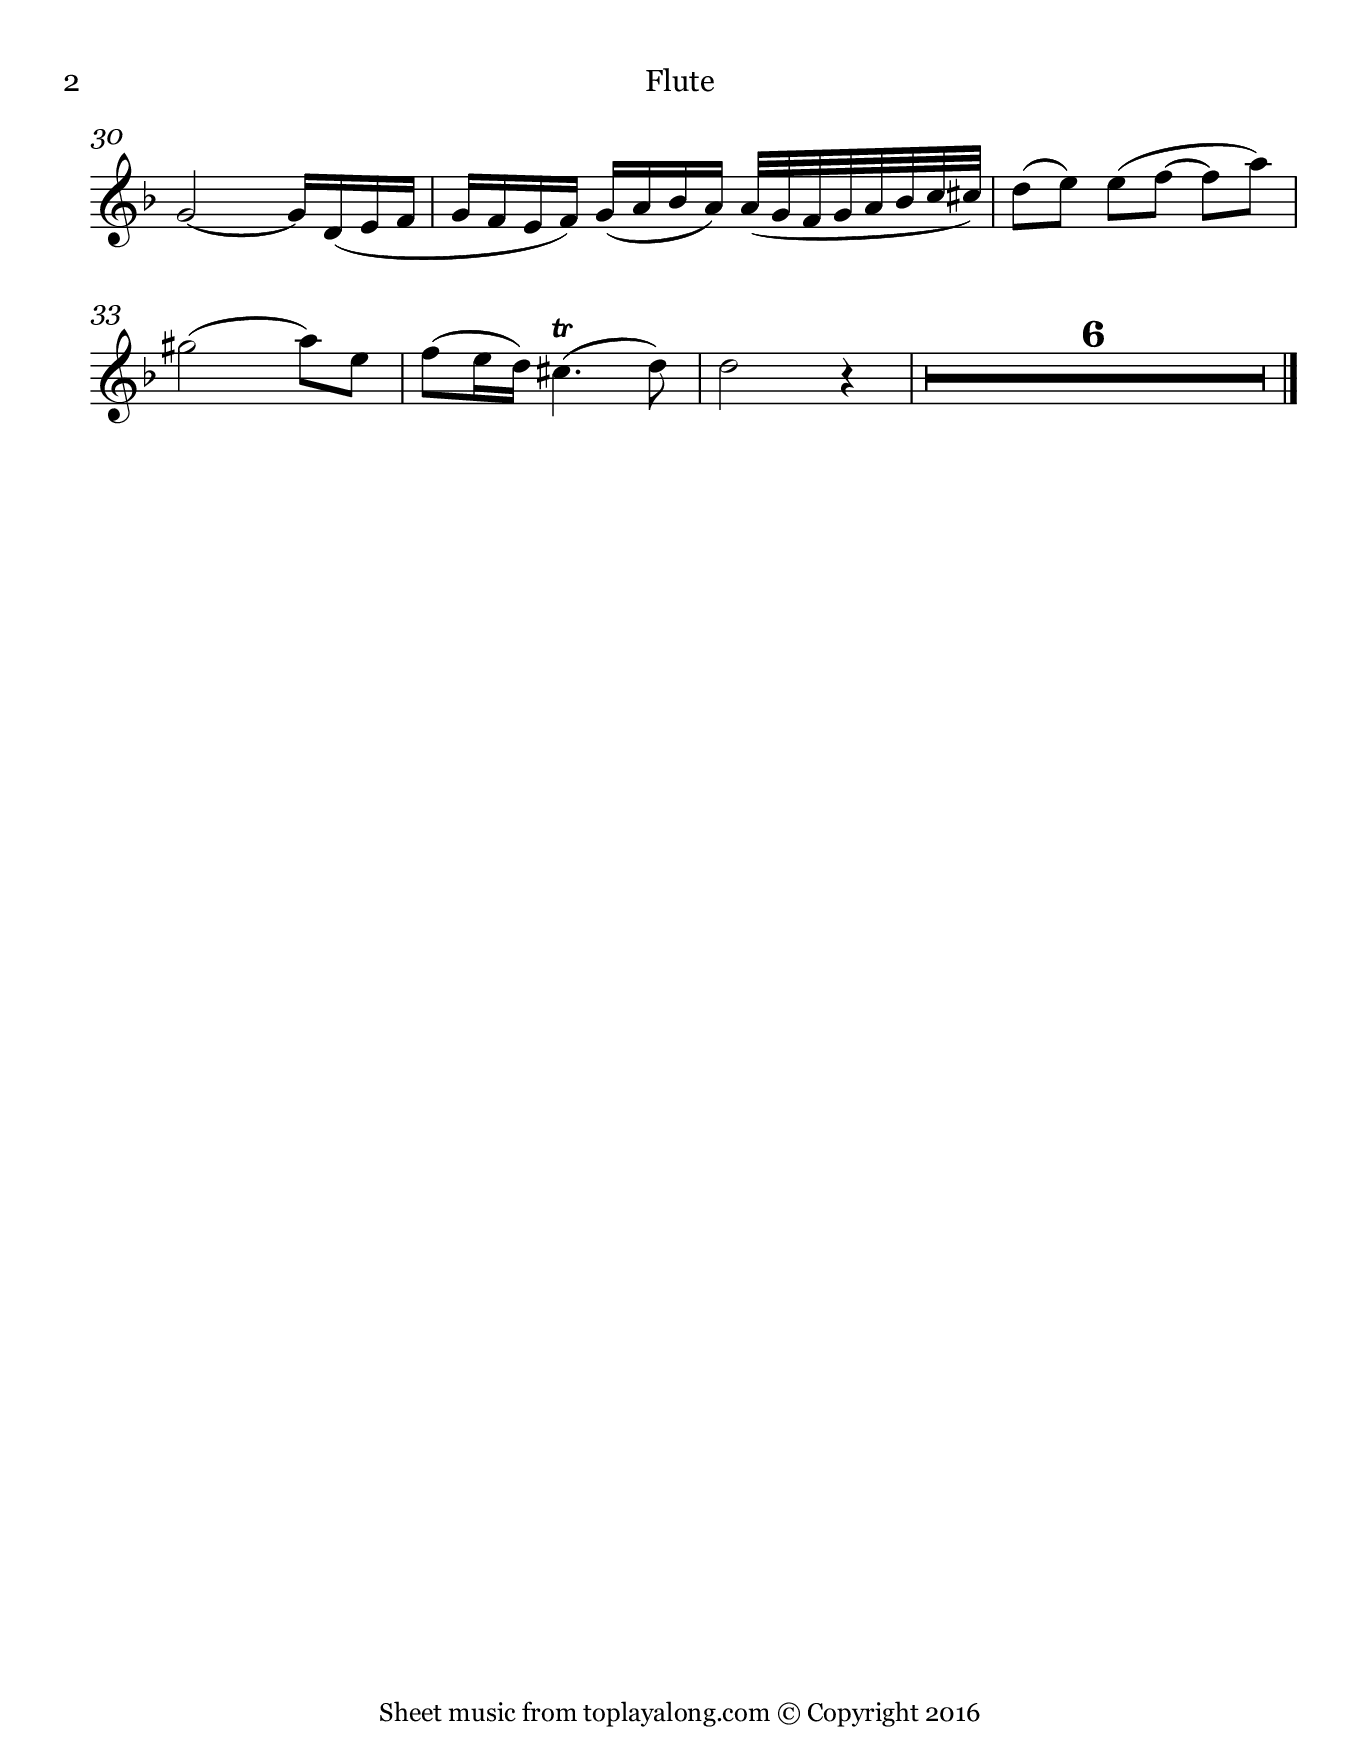 Oboe Concerto in D minor (II. Adagio) by Marcello. Sheet music for Flute, page 2.